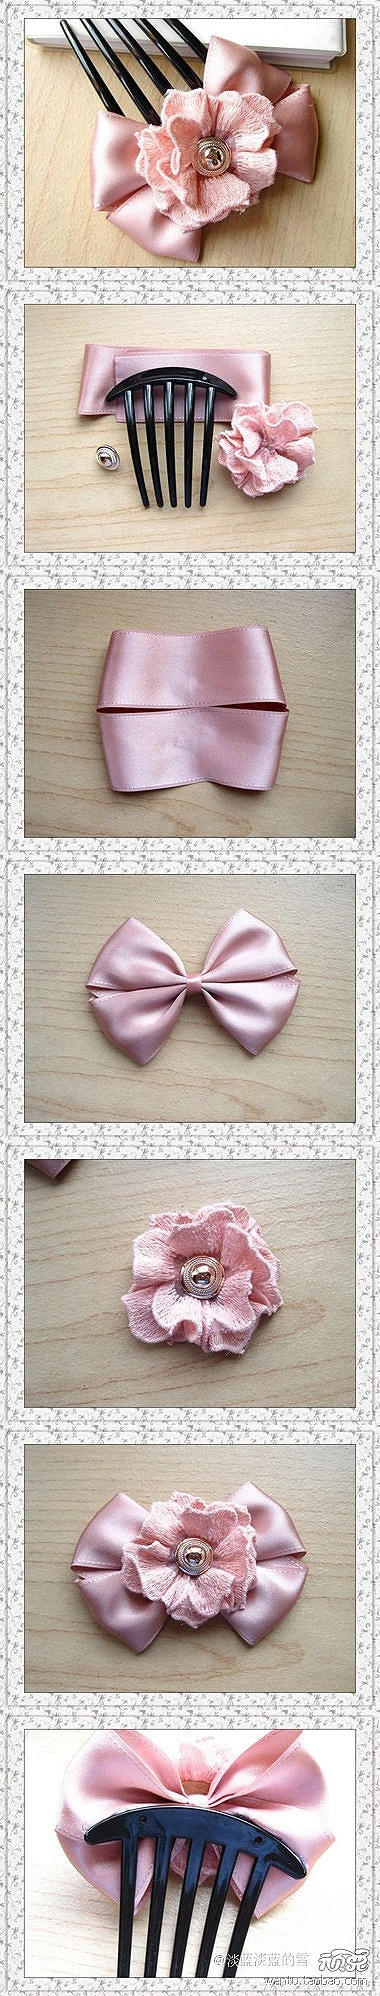 Diy Hair Bow Pictures Photos And Images For Facebook